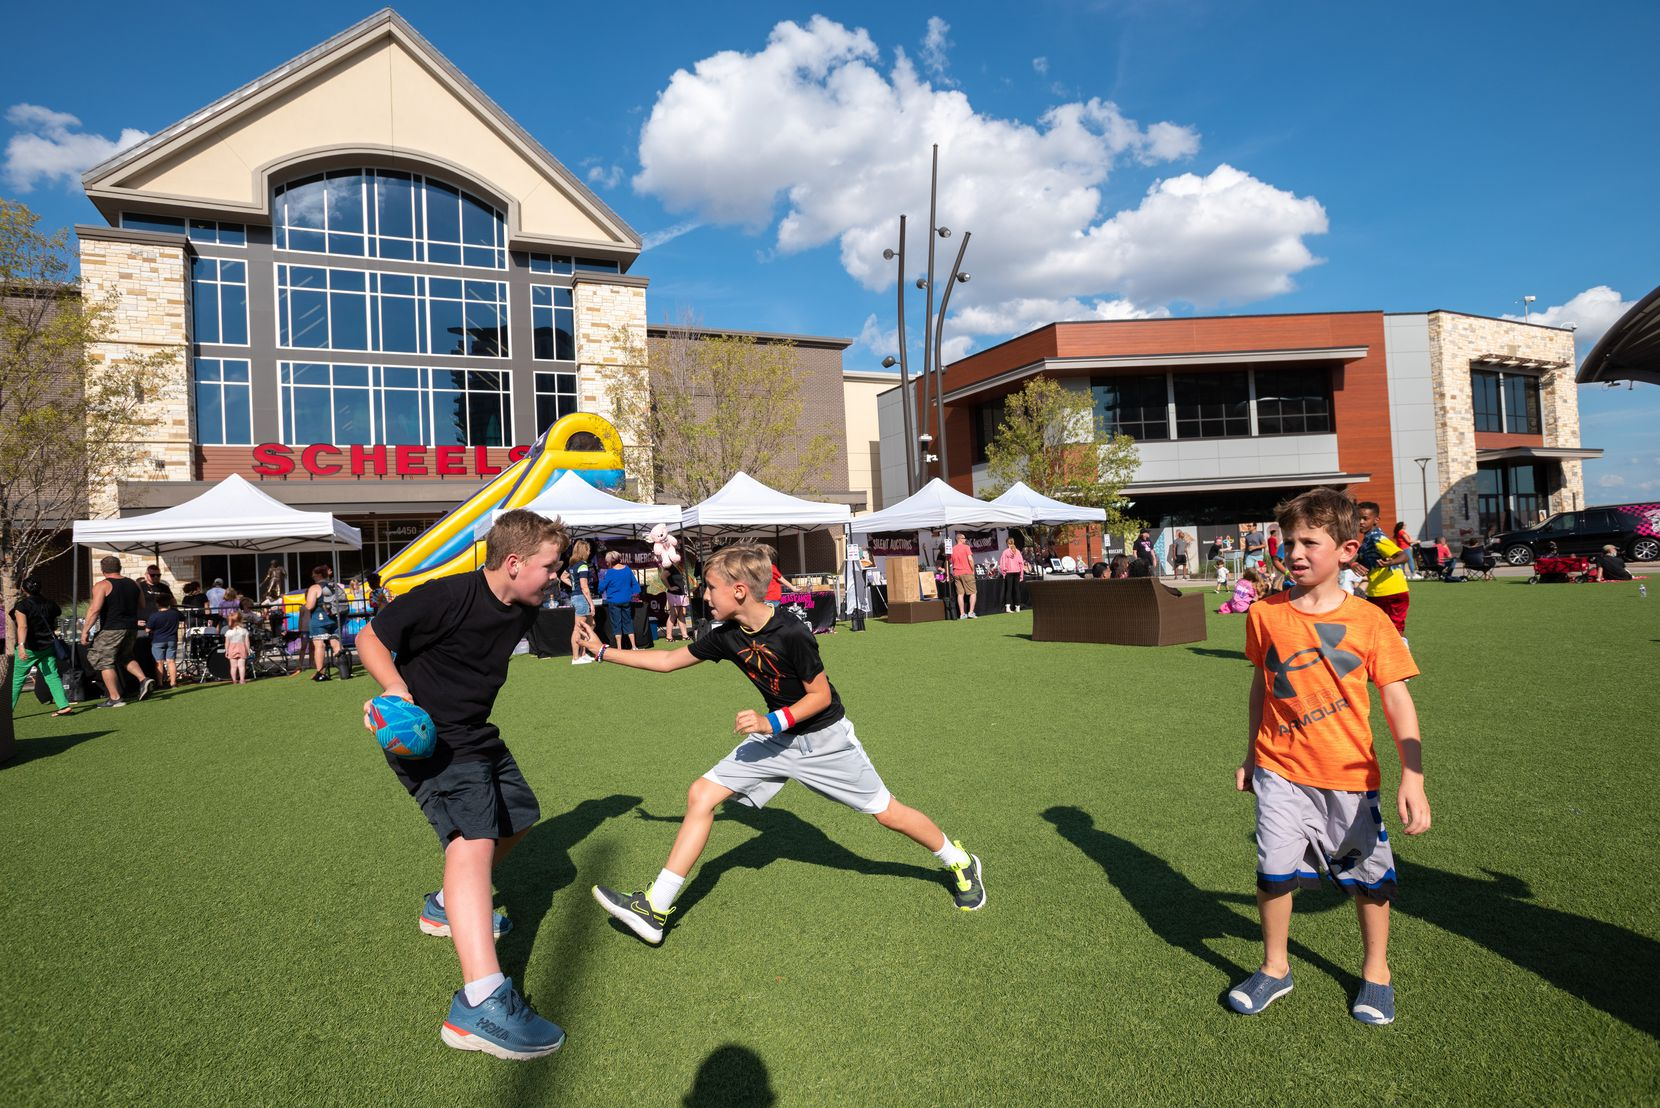 Thatcher Jones, left, and Zach Maris, center, play a game of 2 vs 2 man football on the green turf at Grandscape in The Colony.